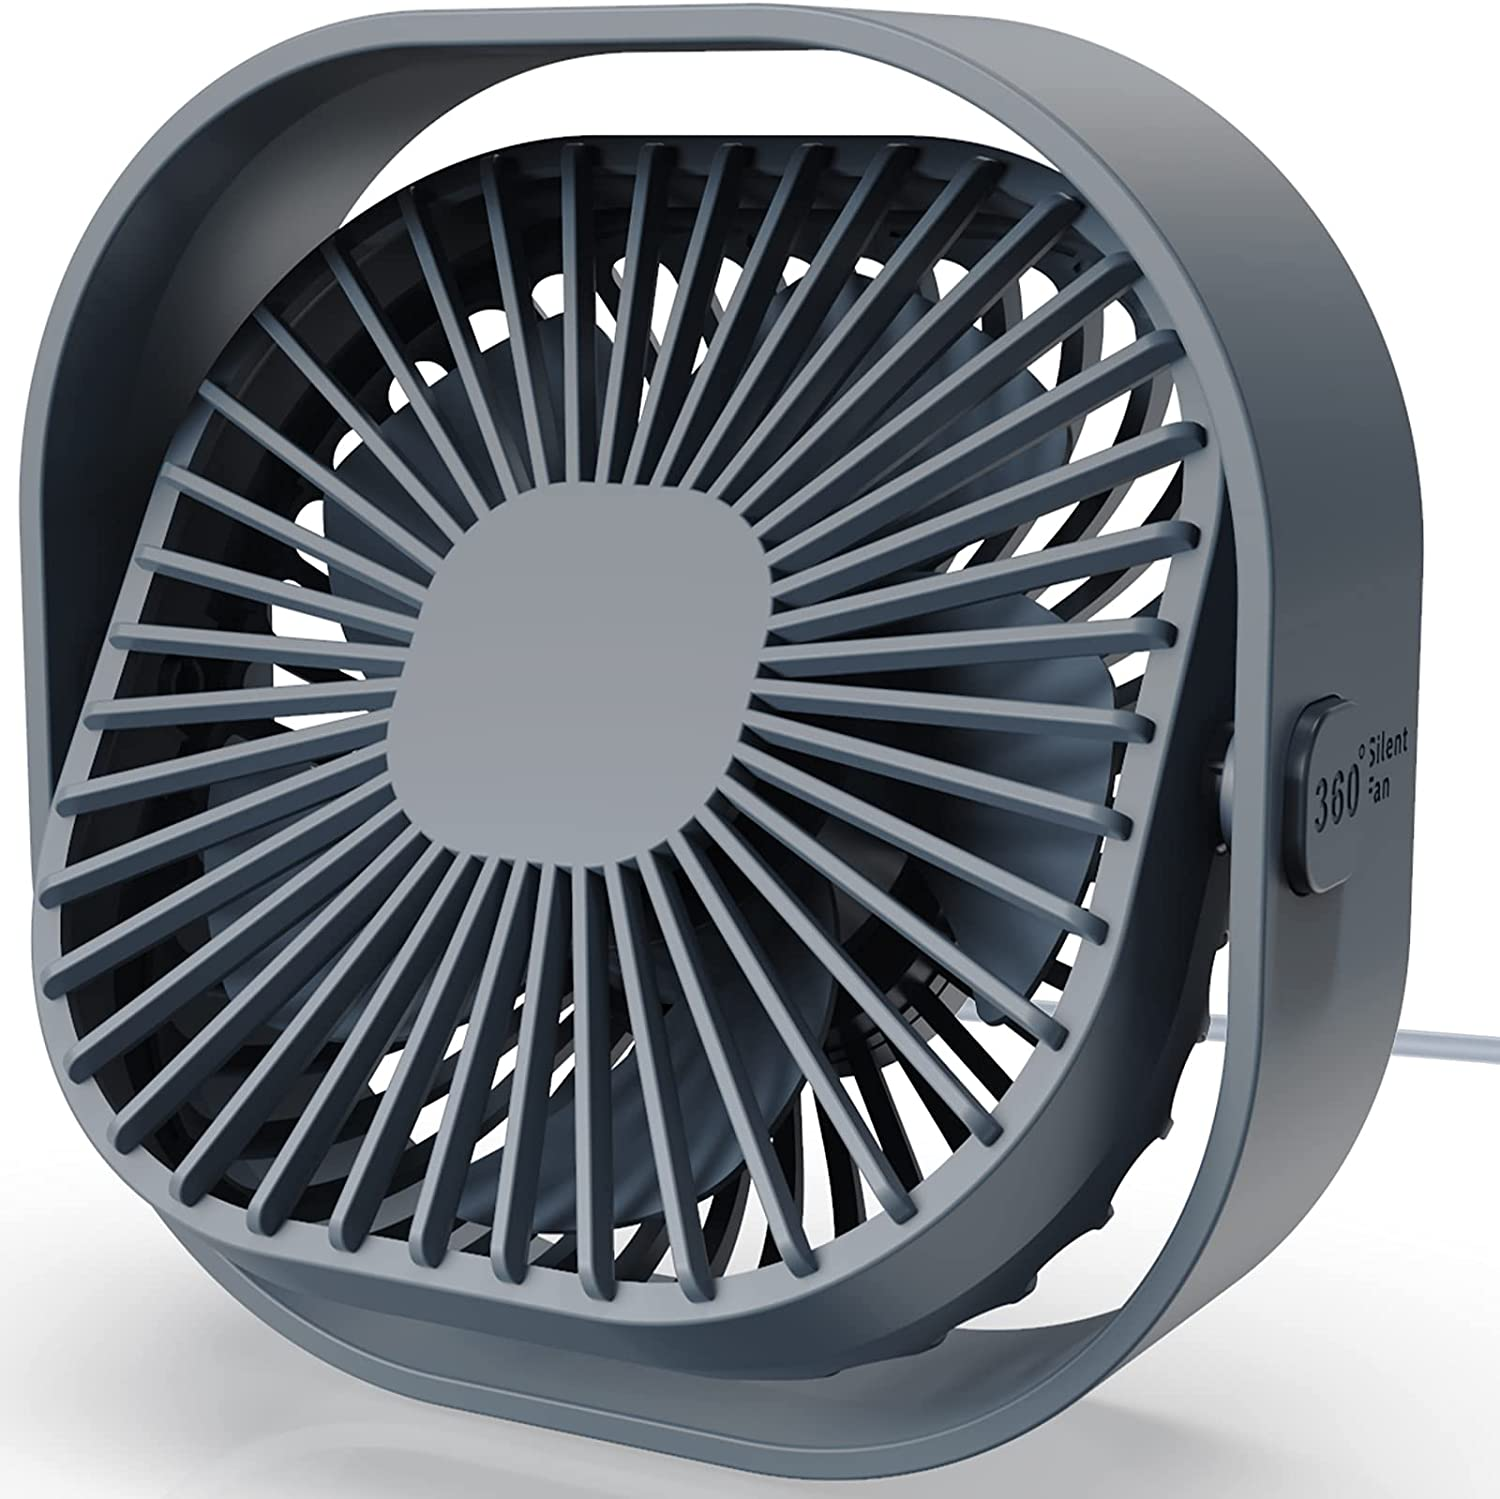 MISSUE USB Desk Fan, Personal Fan with 3 Speeds and 360 Degree Rotation, Portable USB Powered Fan for Home, Office, Indoor and Outdoor